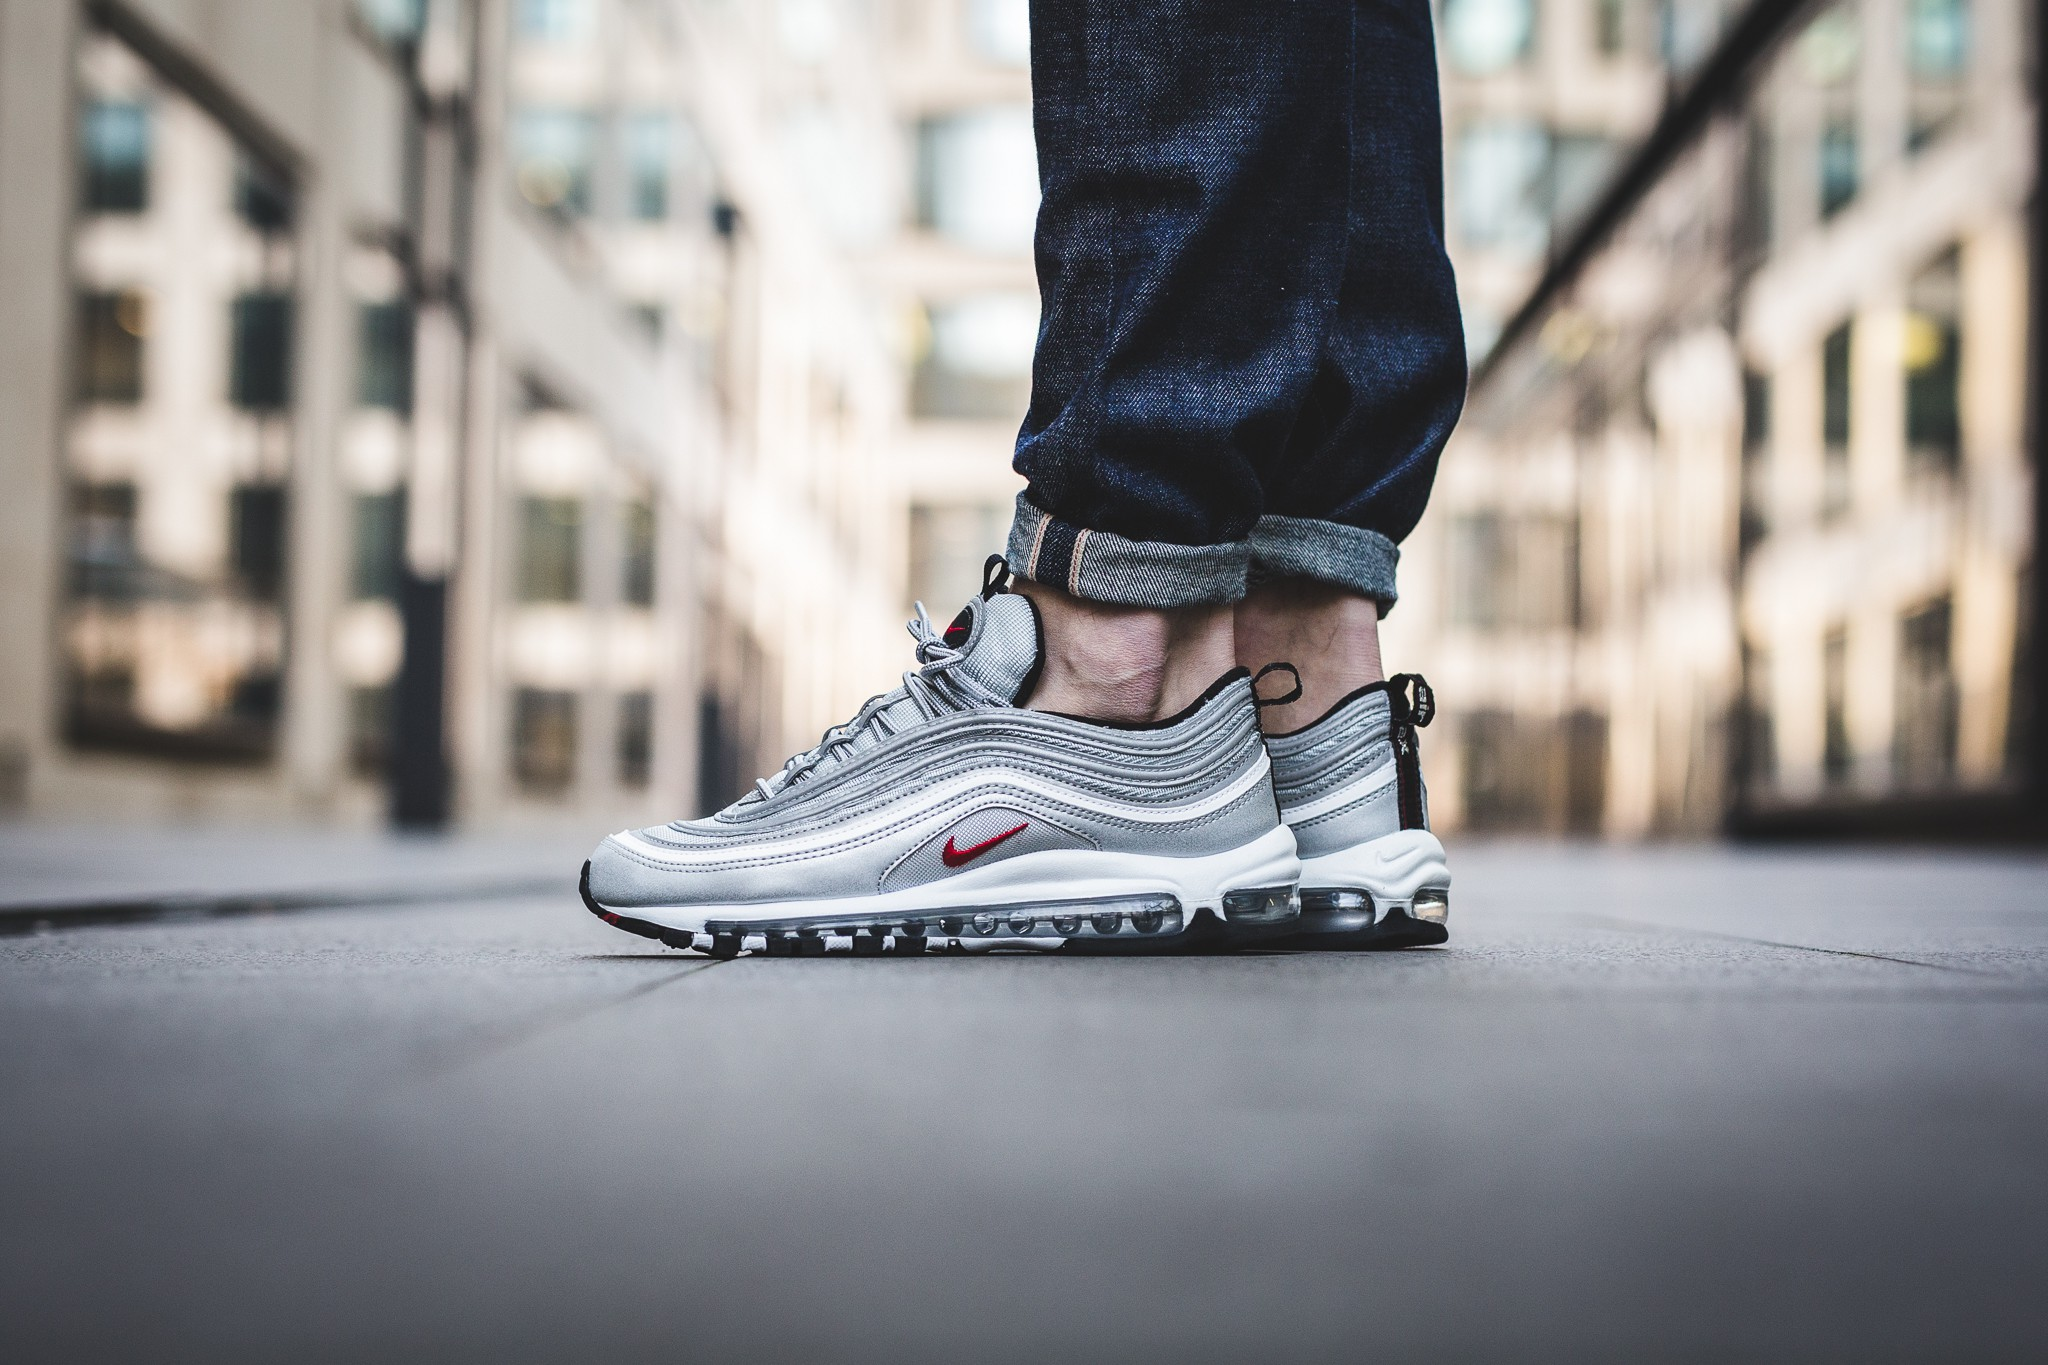 Nike Air Max 97 Og Silver Bullet Restock Links Cop These